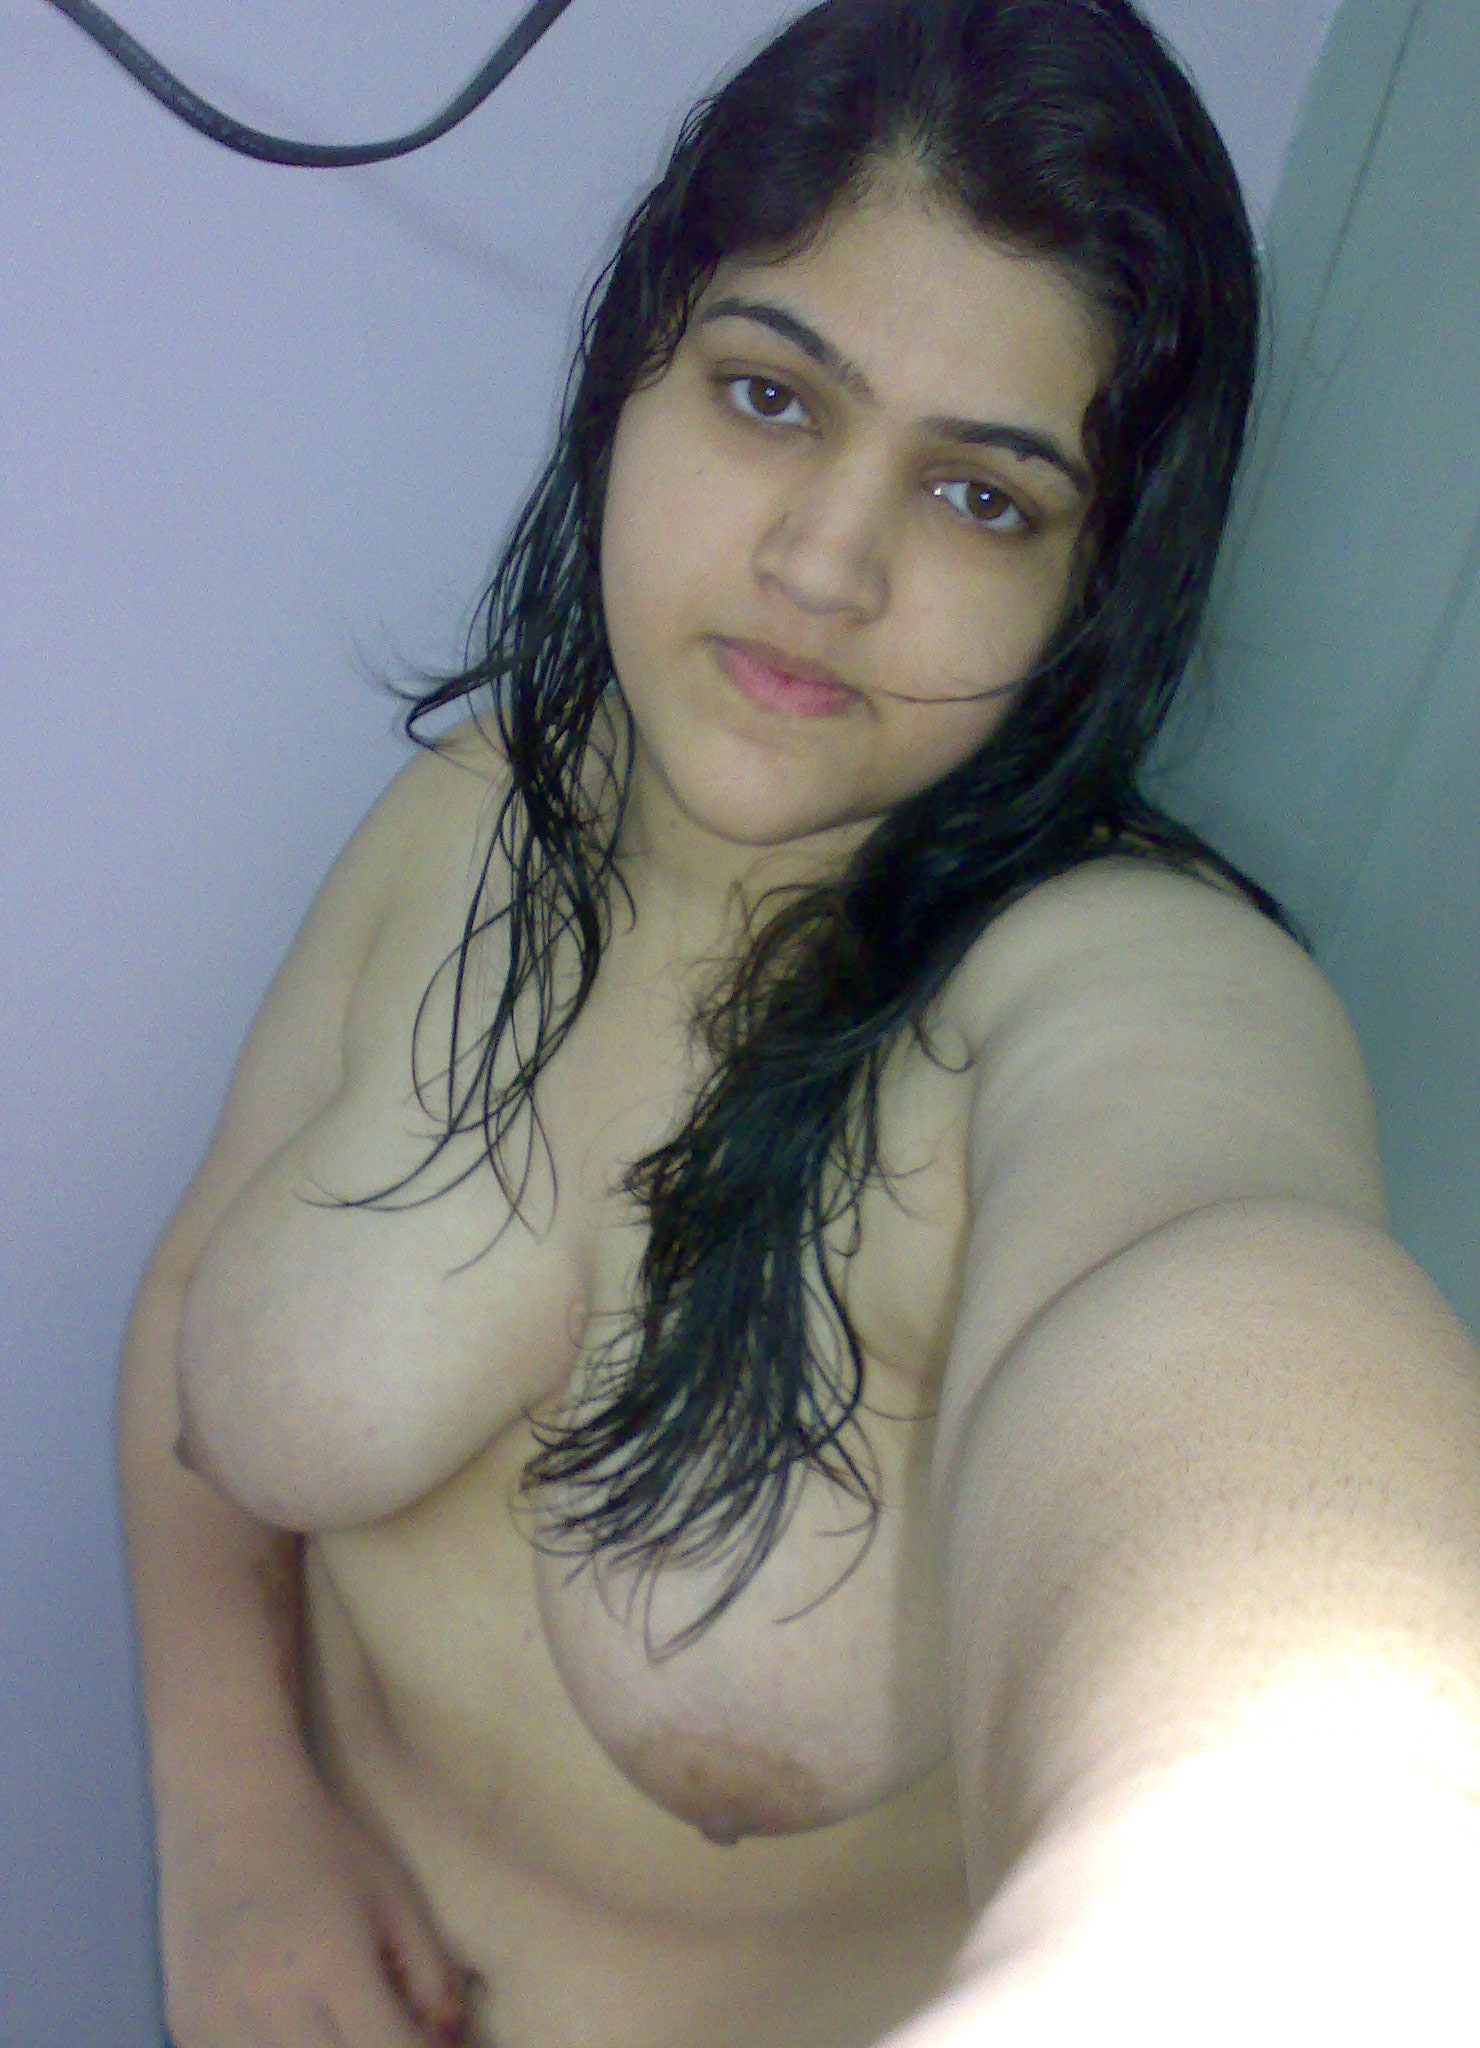 Indian selfie chubby girl nude